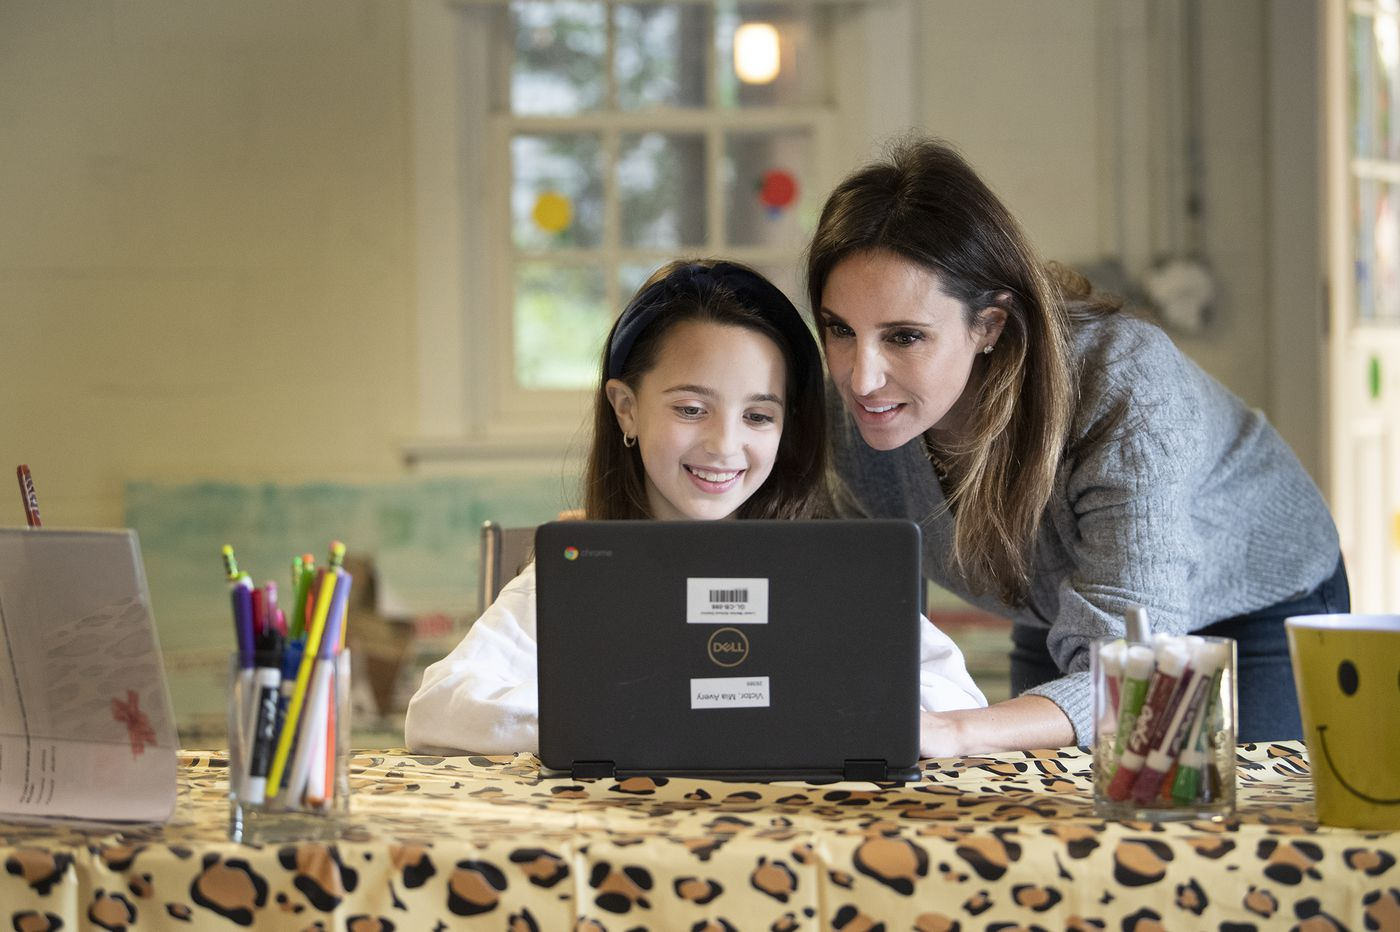 School is digital, kids are overwhelmed. How do you manage screen time in the COVID-19 era?